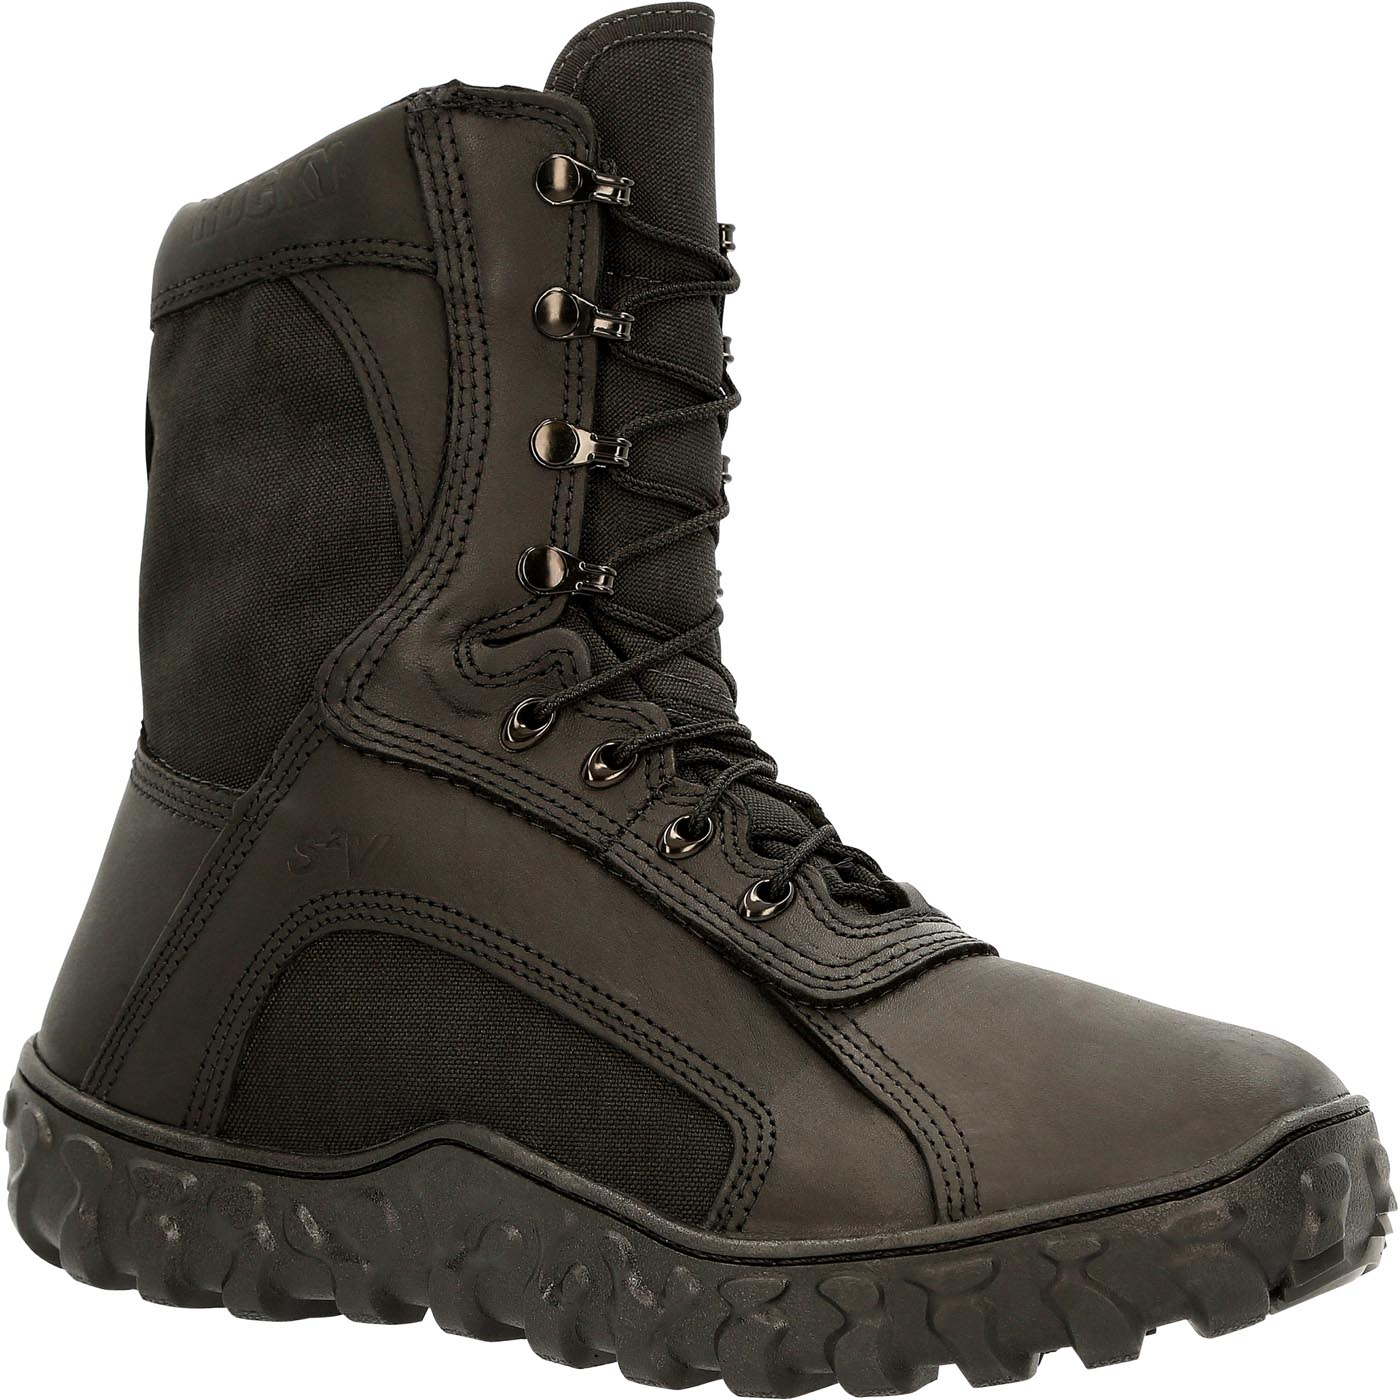 8974dcf0dc5 Rocky Black S2V 400G Insulated Tactical Military BootRocky Black S2V 400G  Insulated Tactical Military Boot